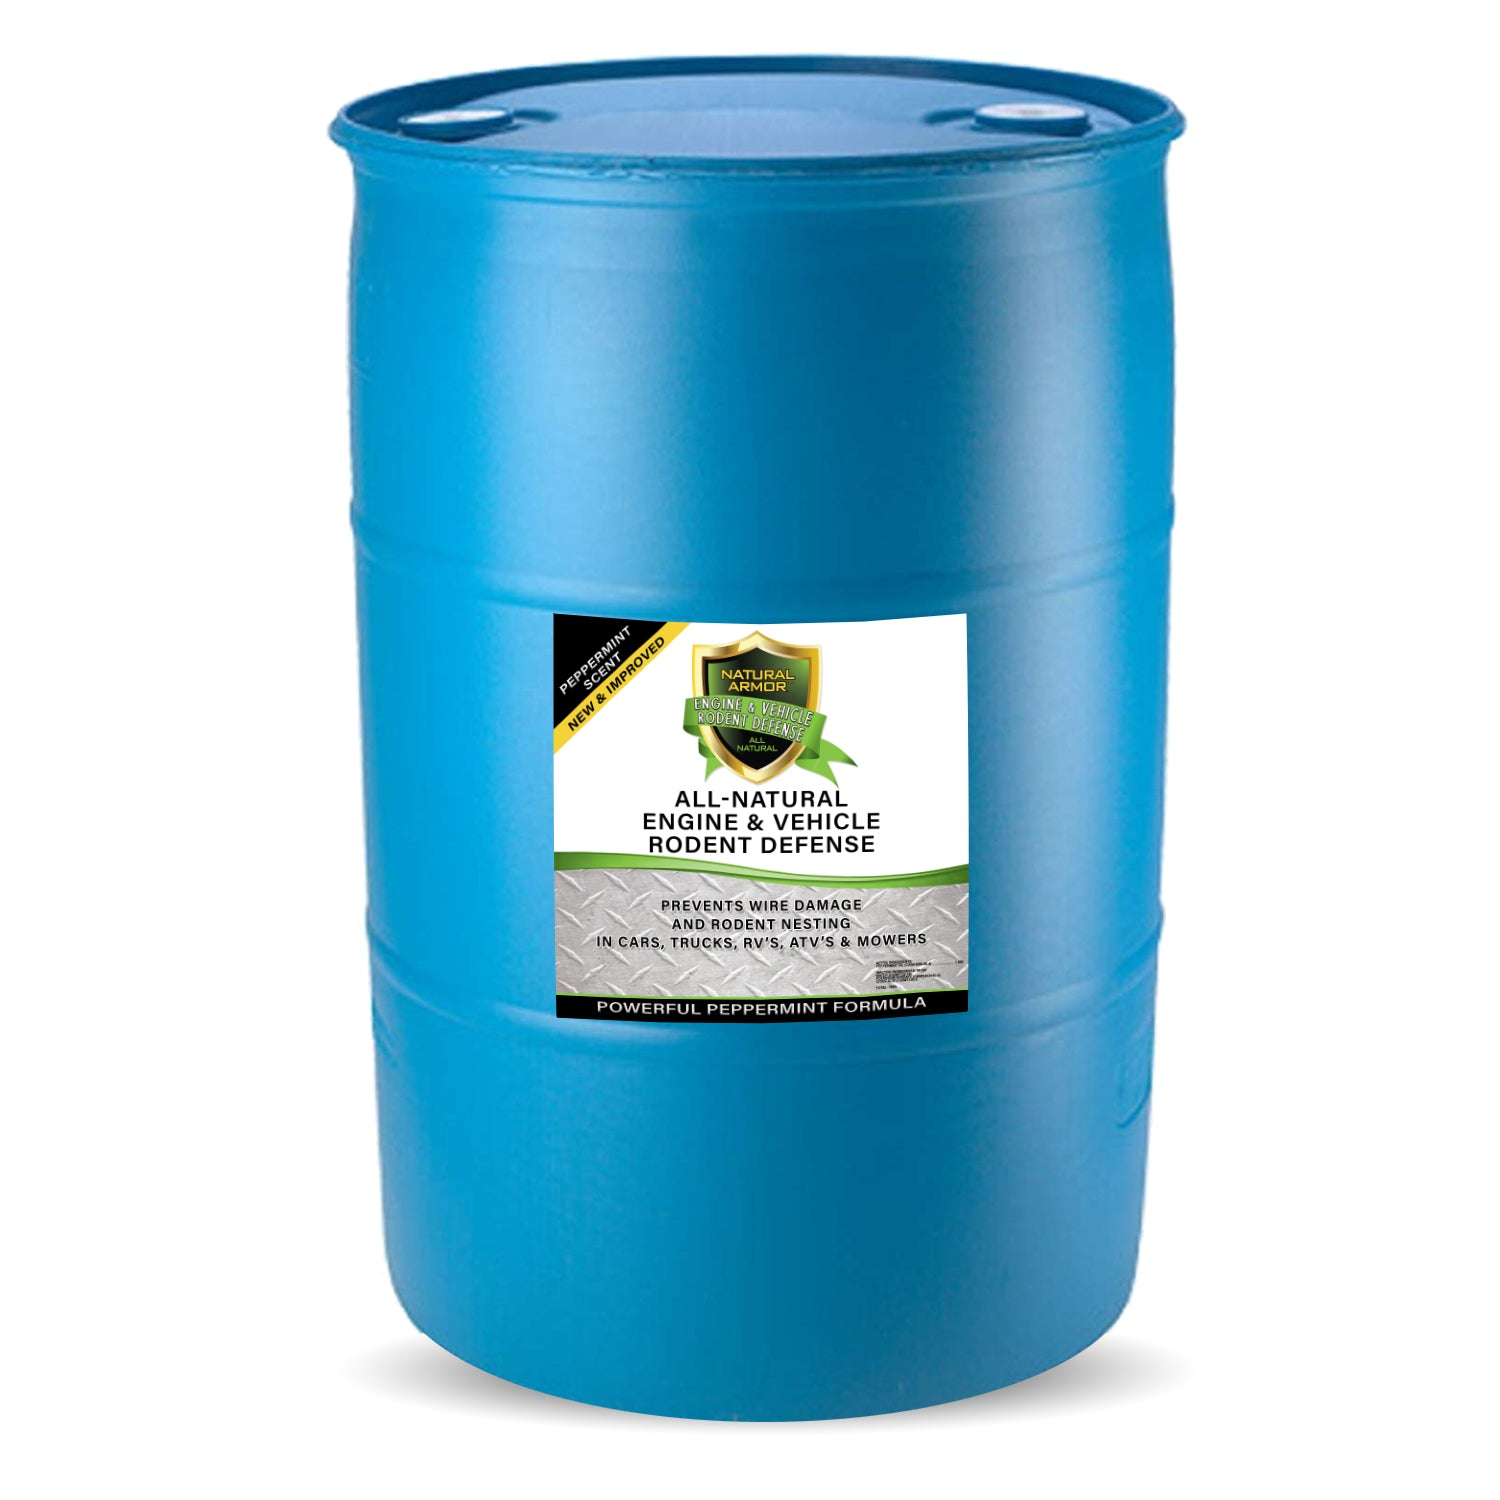 All-Natural Vehicle & Engine Protection - Ready to Use - (1) 30 Gallon Drum